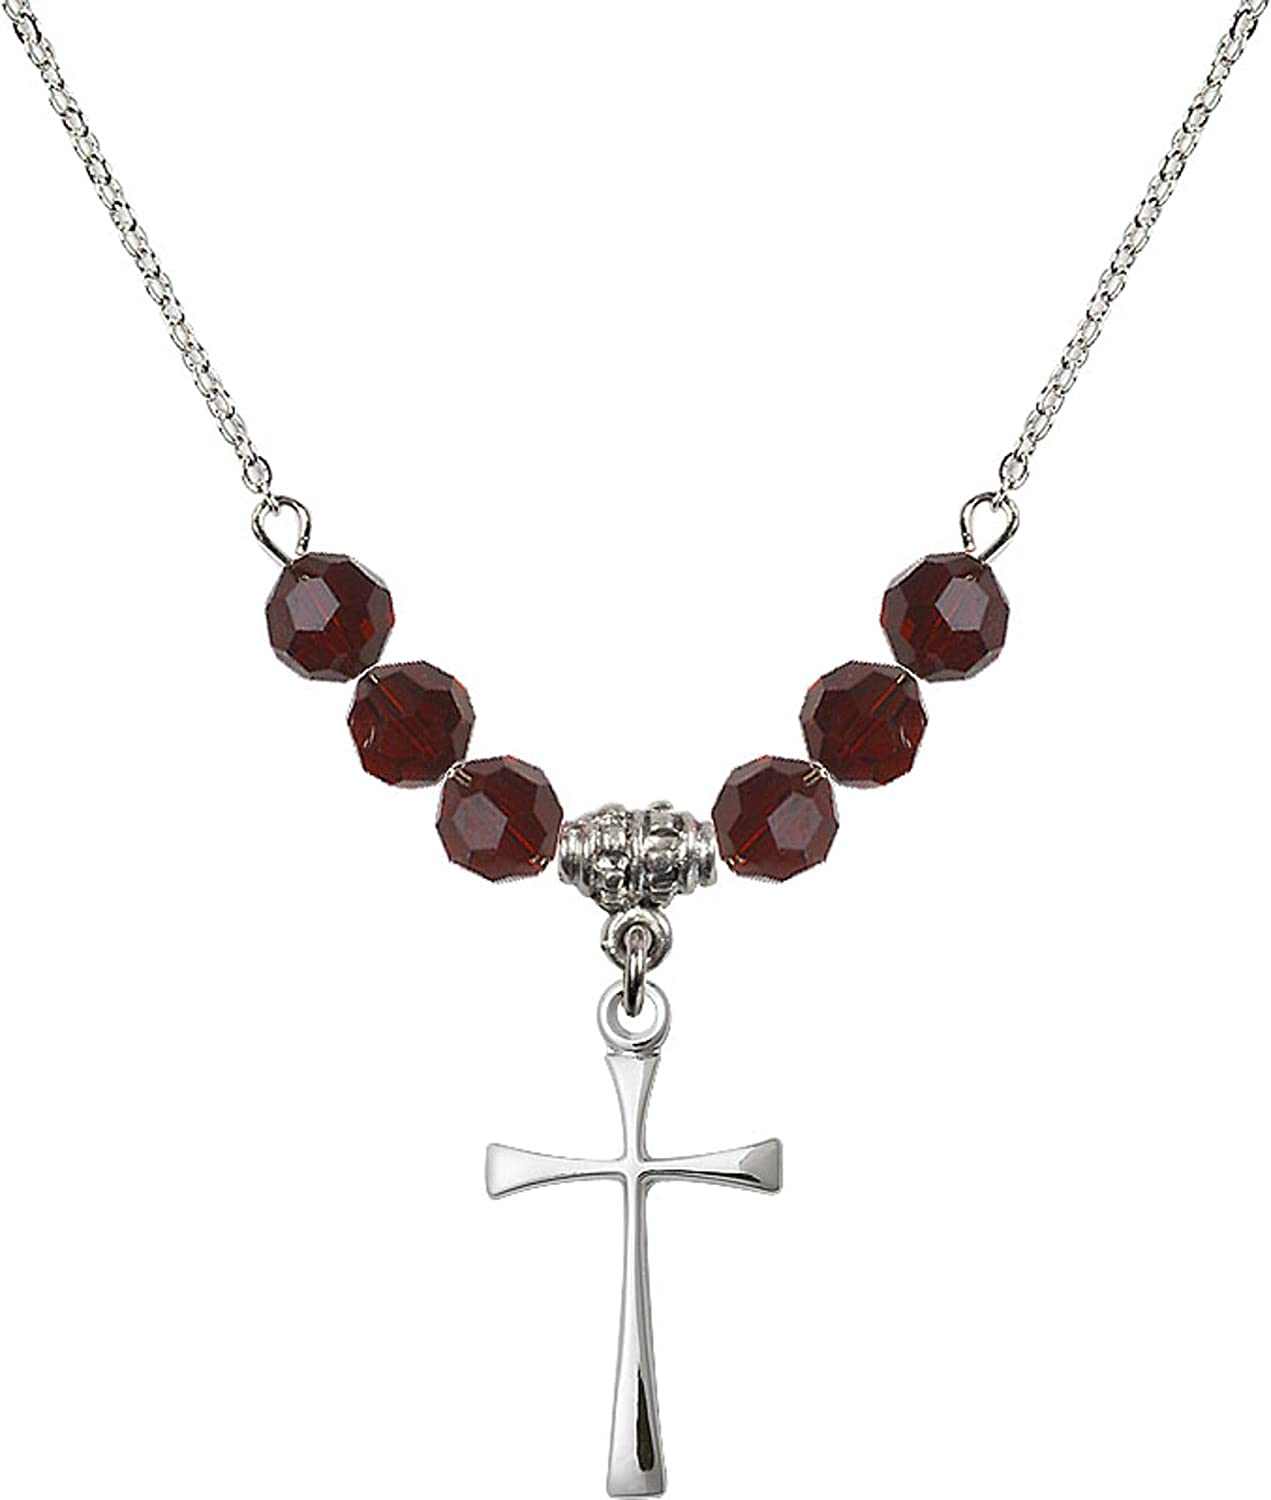 Bonyak Jewelry 18 Inch Rhodium Plated Necklace w// 6mm Red January Birth Month Stone Beads and Maltese Cross Charm